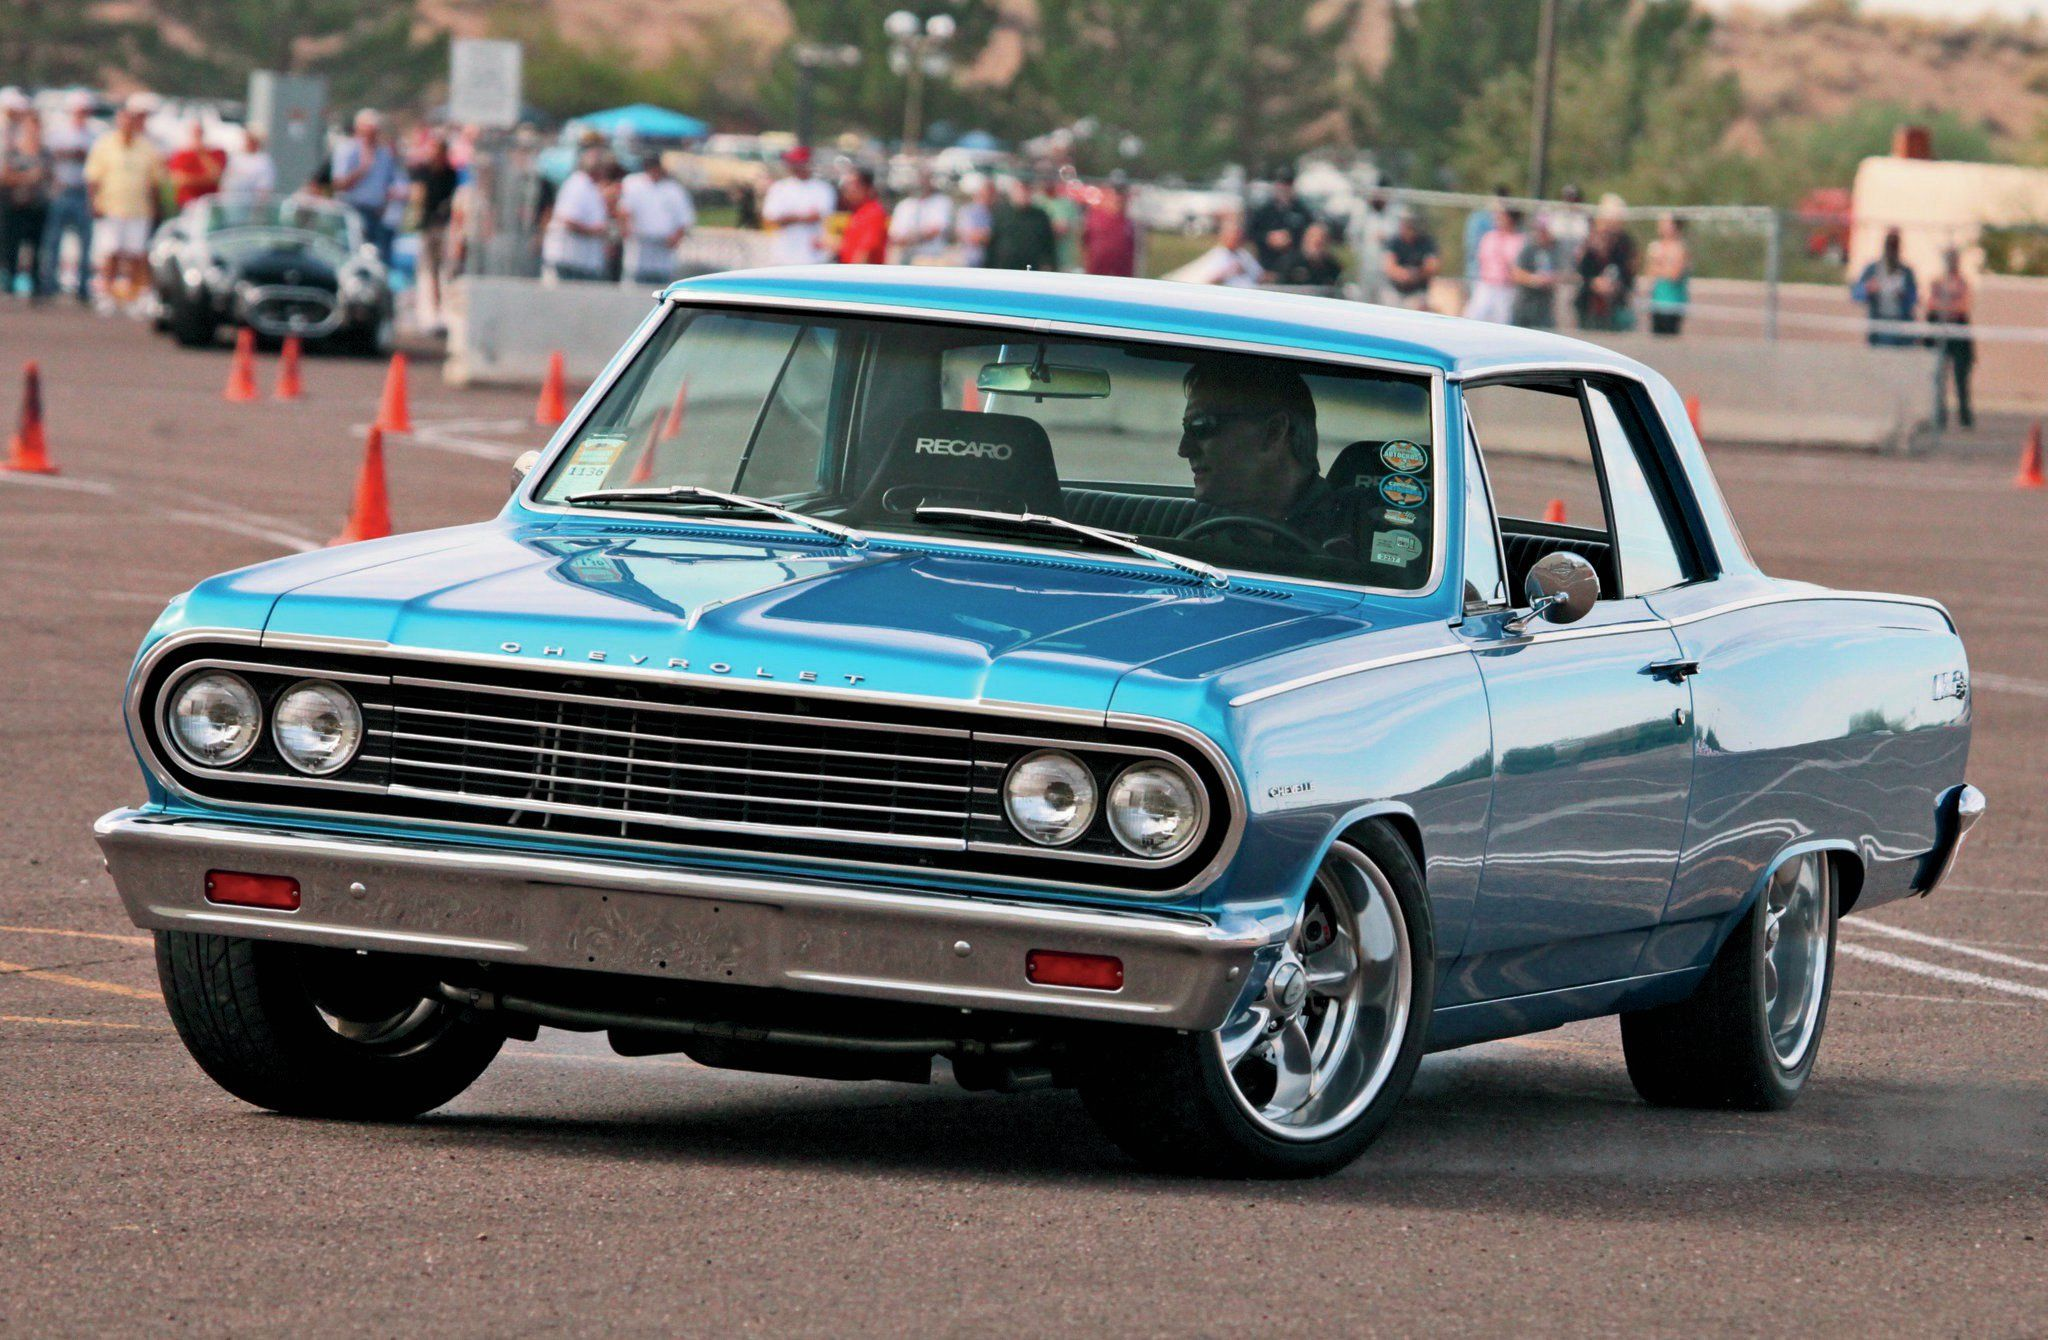 Although keith s chevelle doesn t have the fanciest of